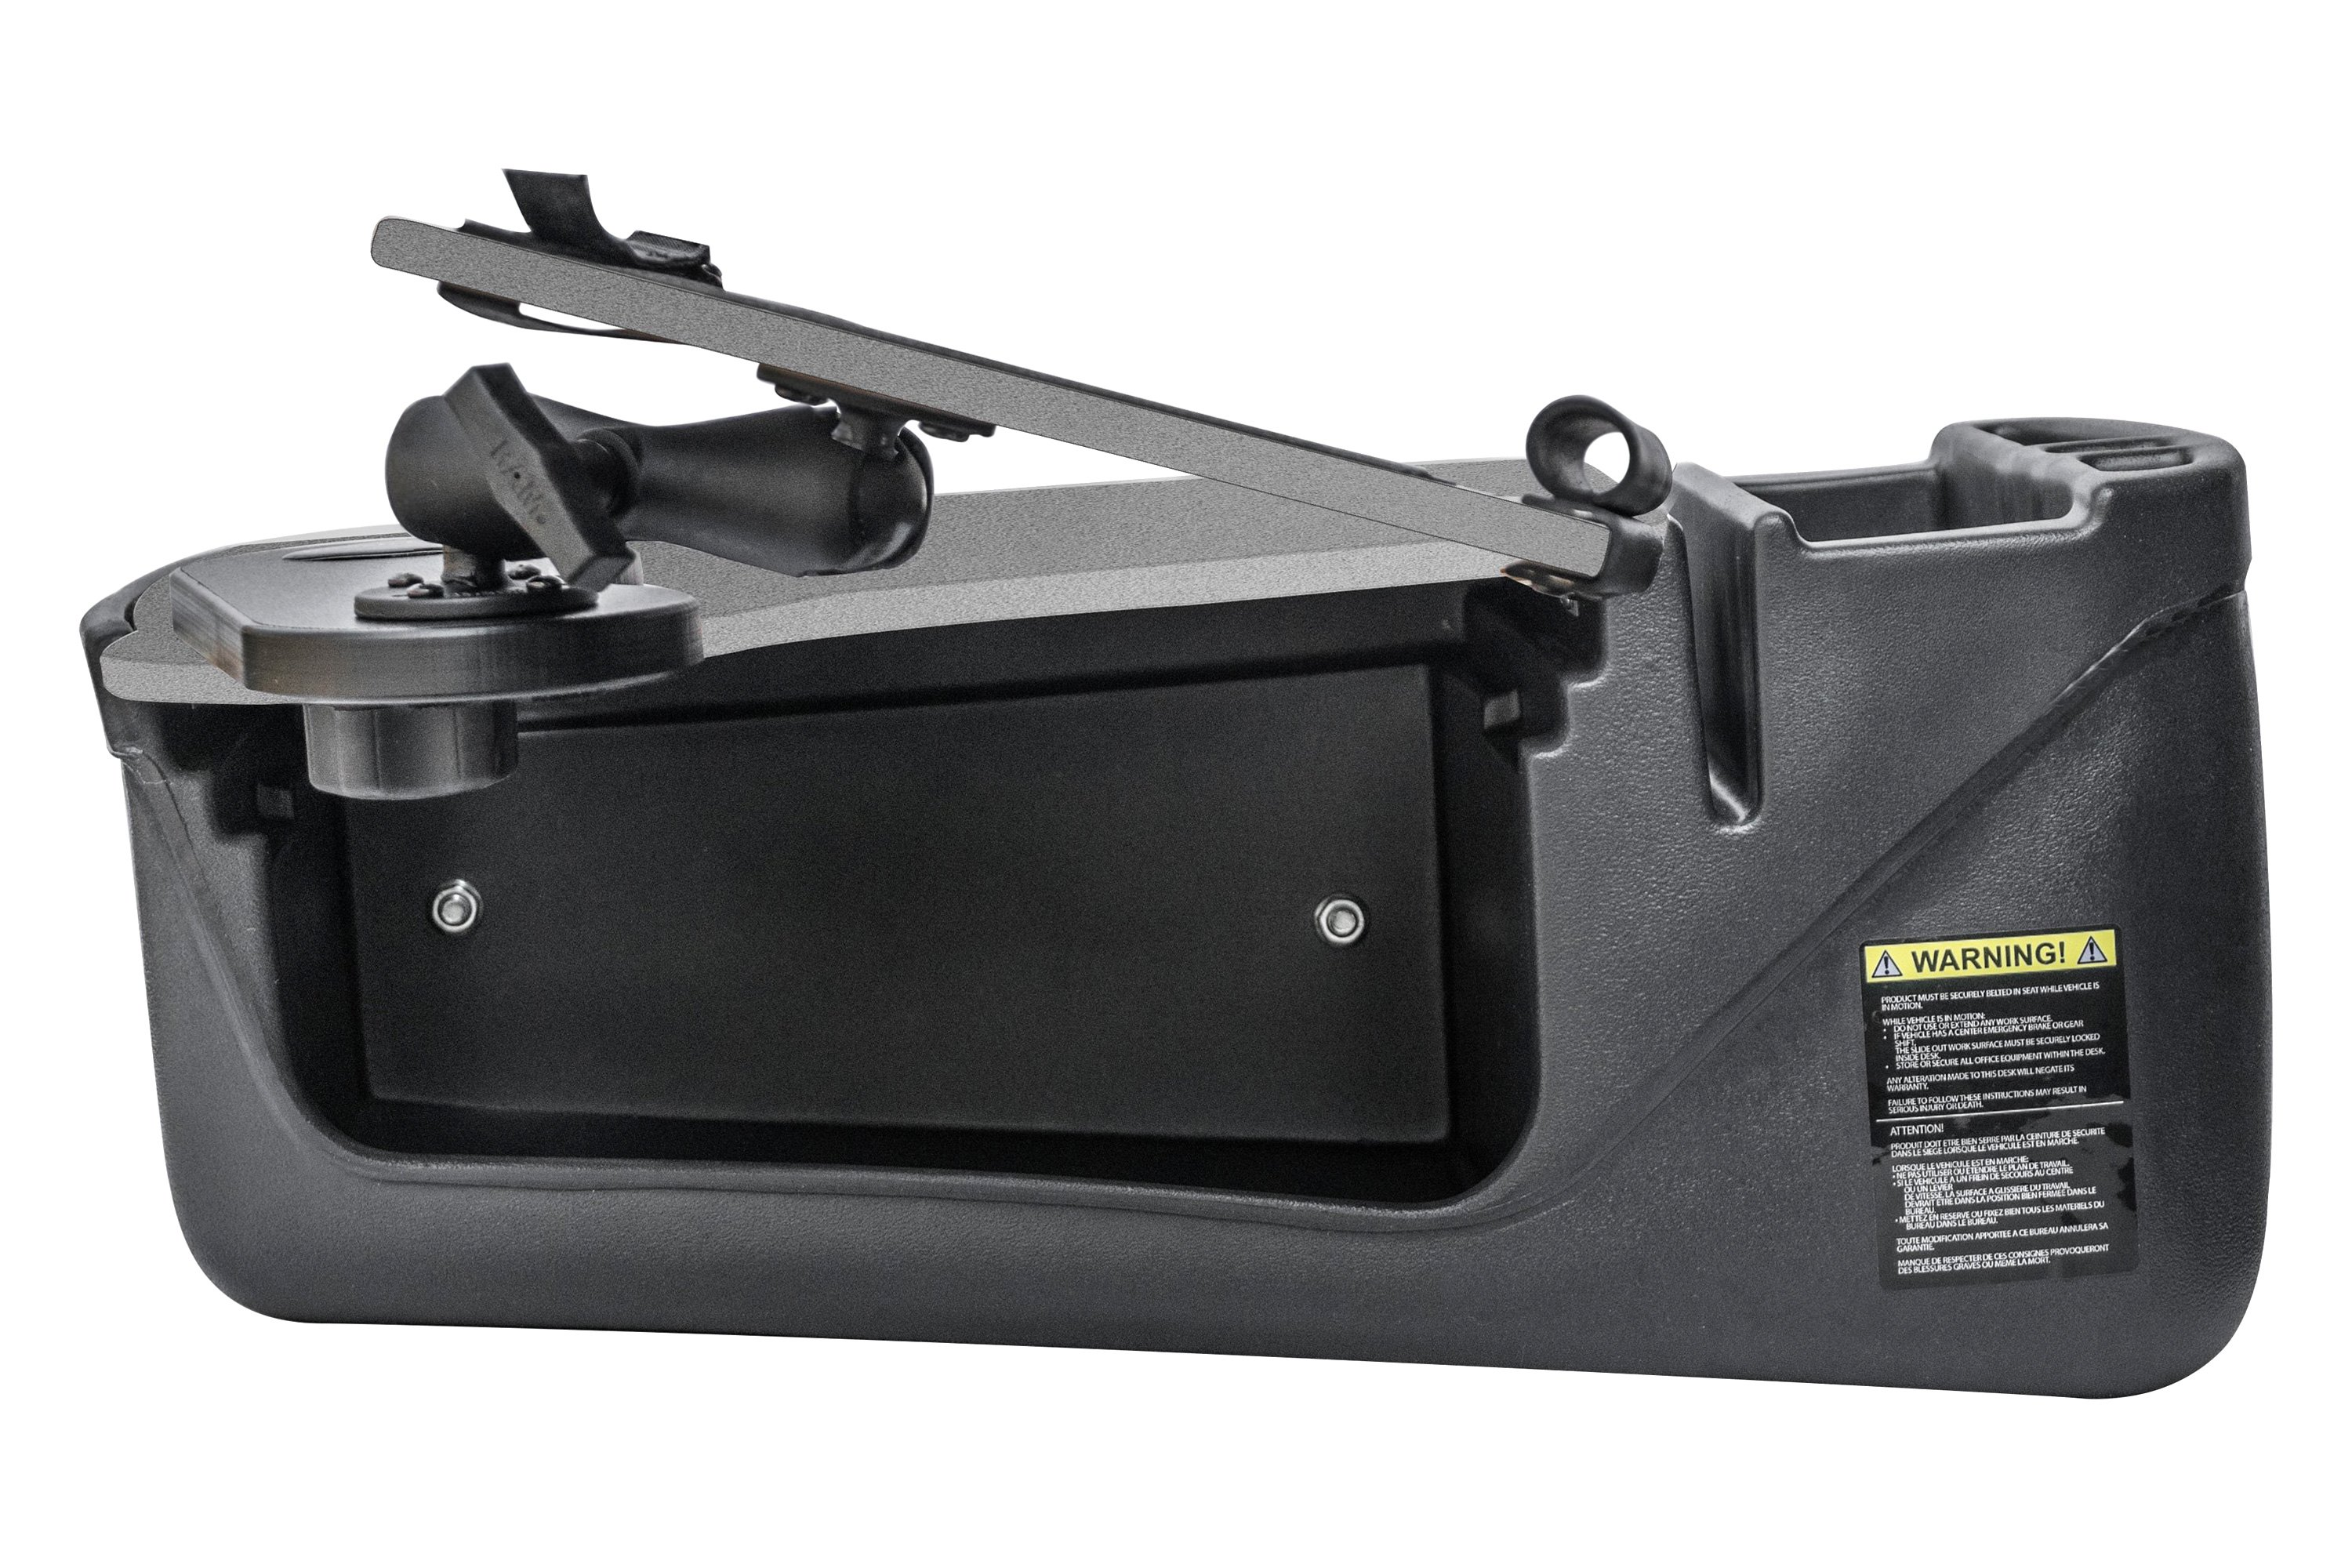 Autoexec 174 10009 Rear Seat Reach Desk With 200w Inverter